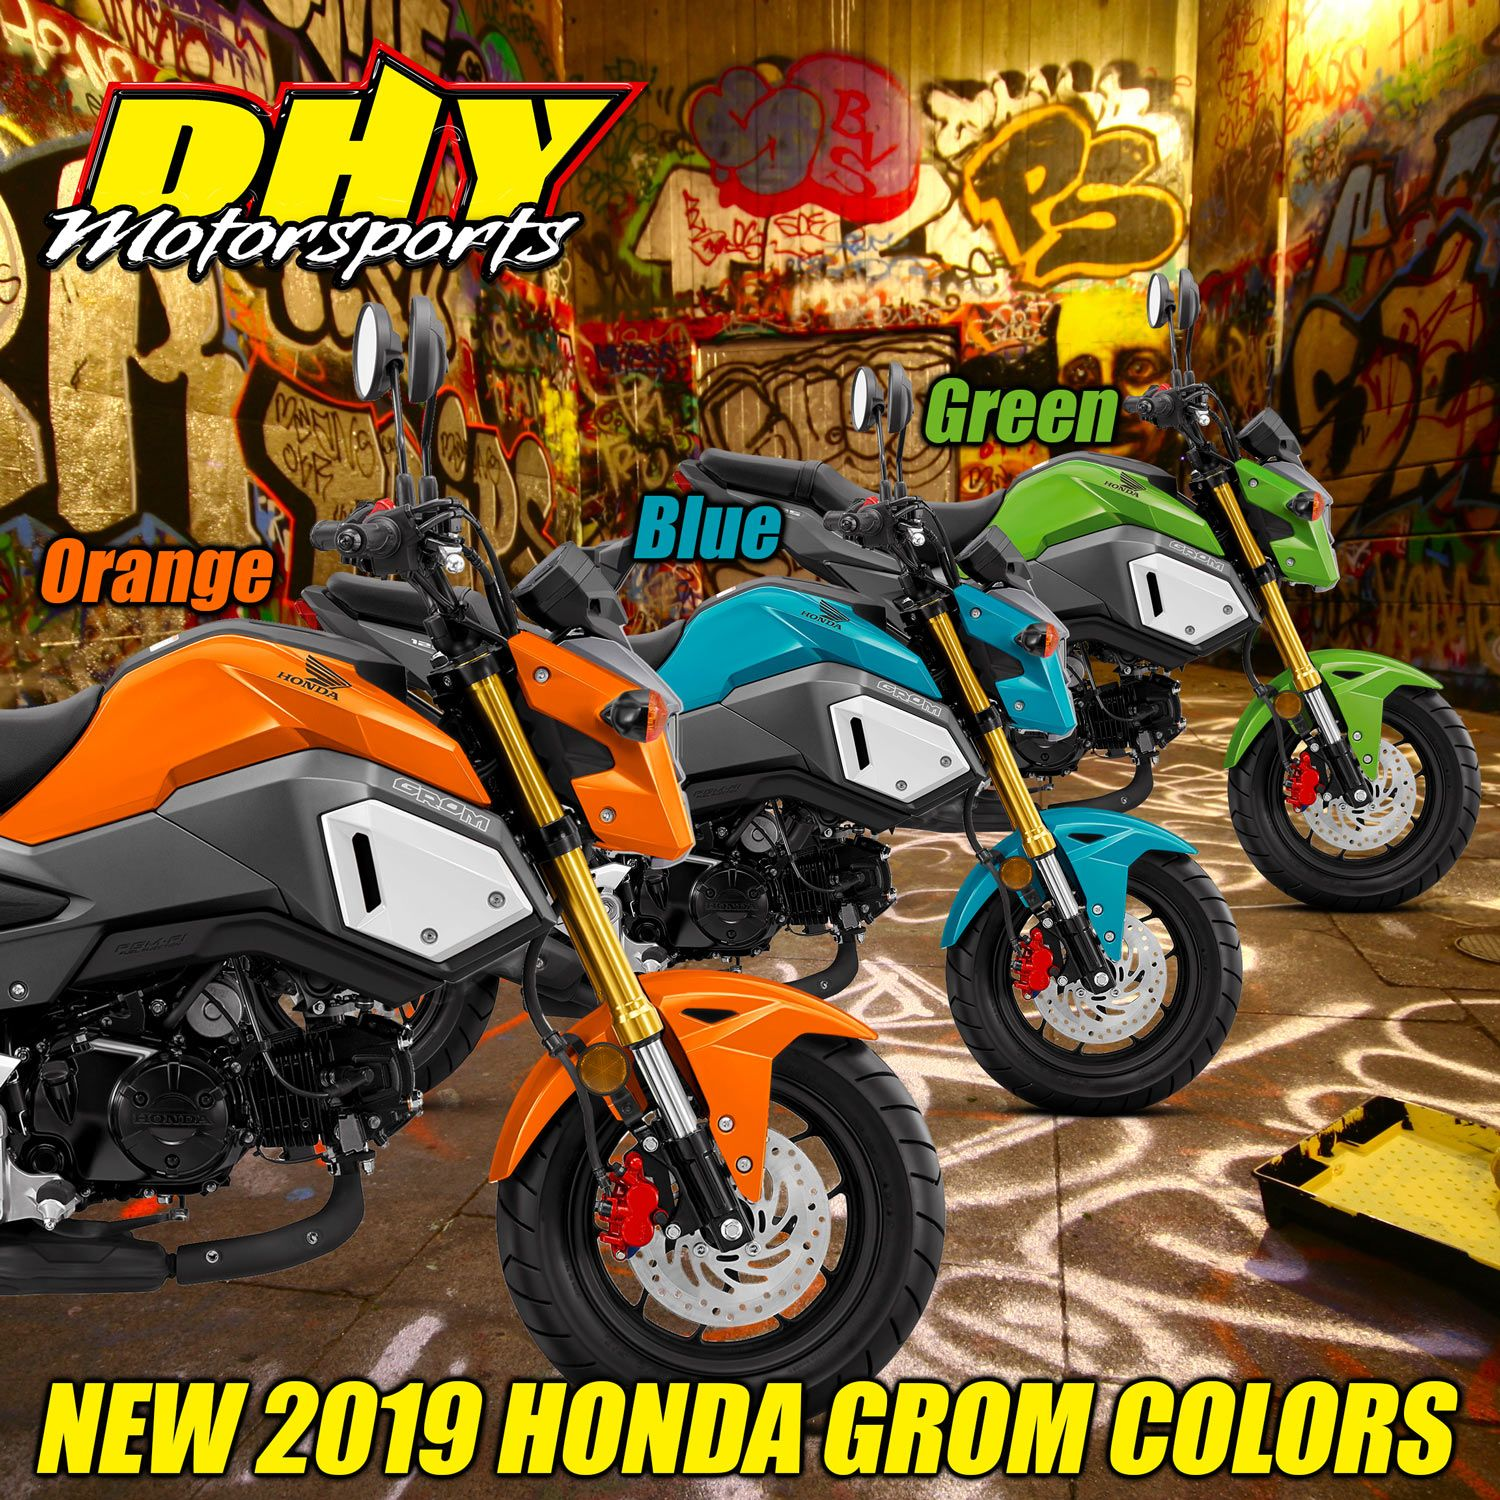 2019 Brings 3 Exciting New Colors To The Honda Grom Family Orange Blue And Green Are Now Available At Dhymotorsports Dhygromnati Honda Grom Honda Color